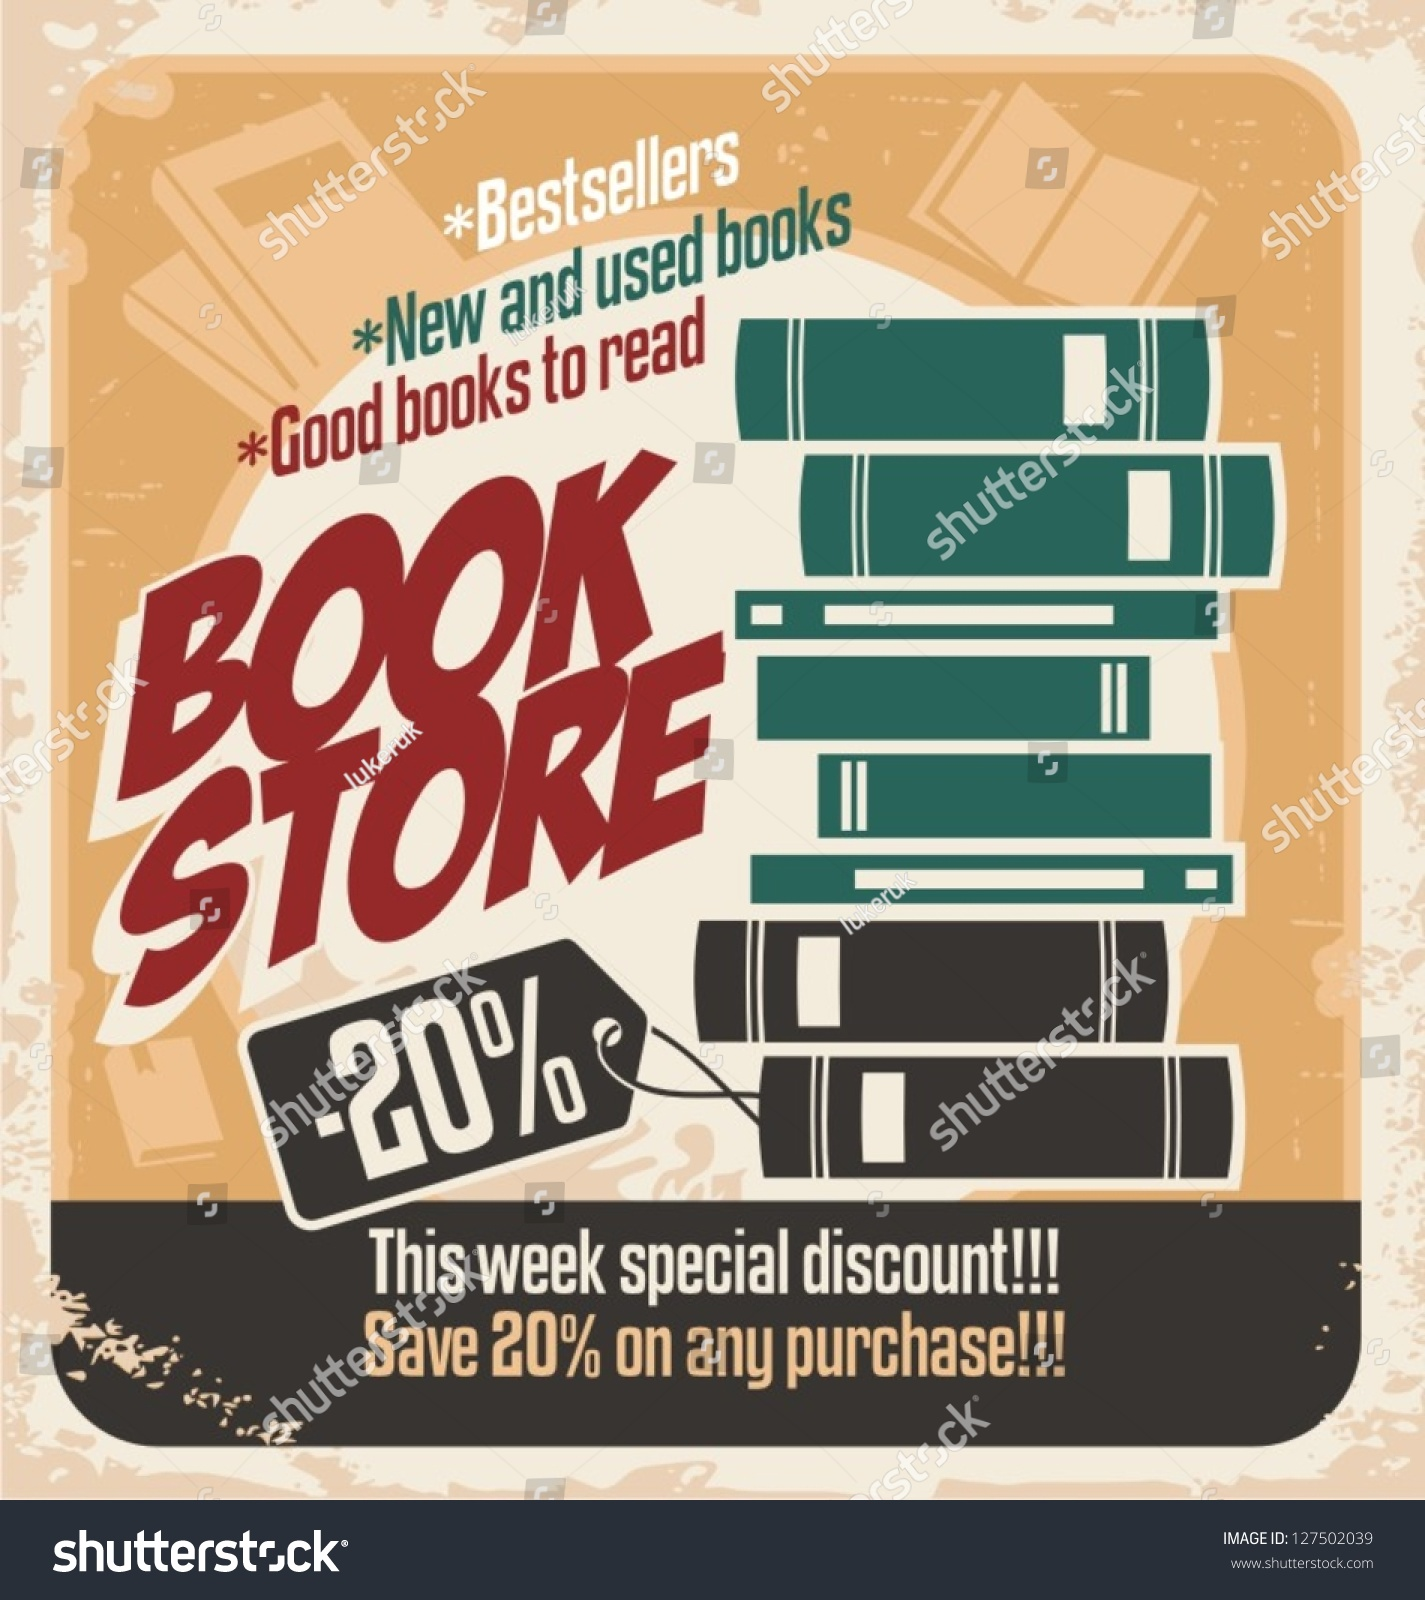 retro bookstore poster design  vintage ad template with